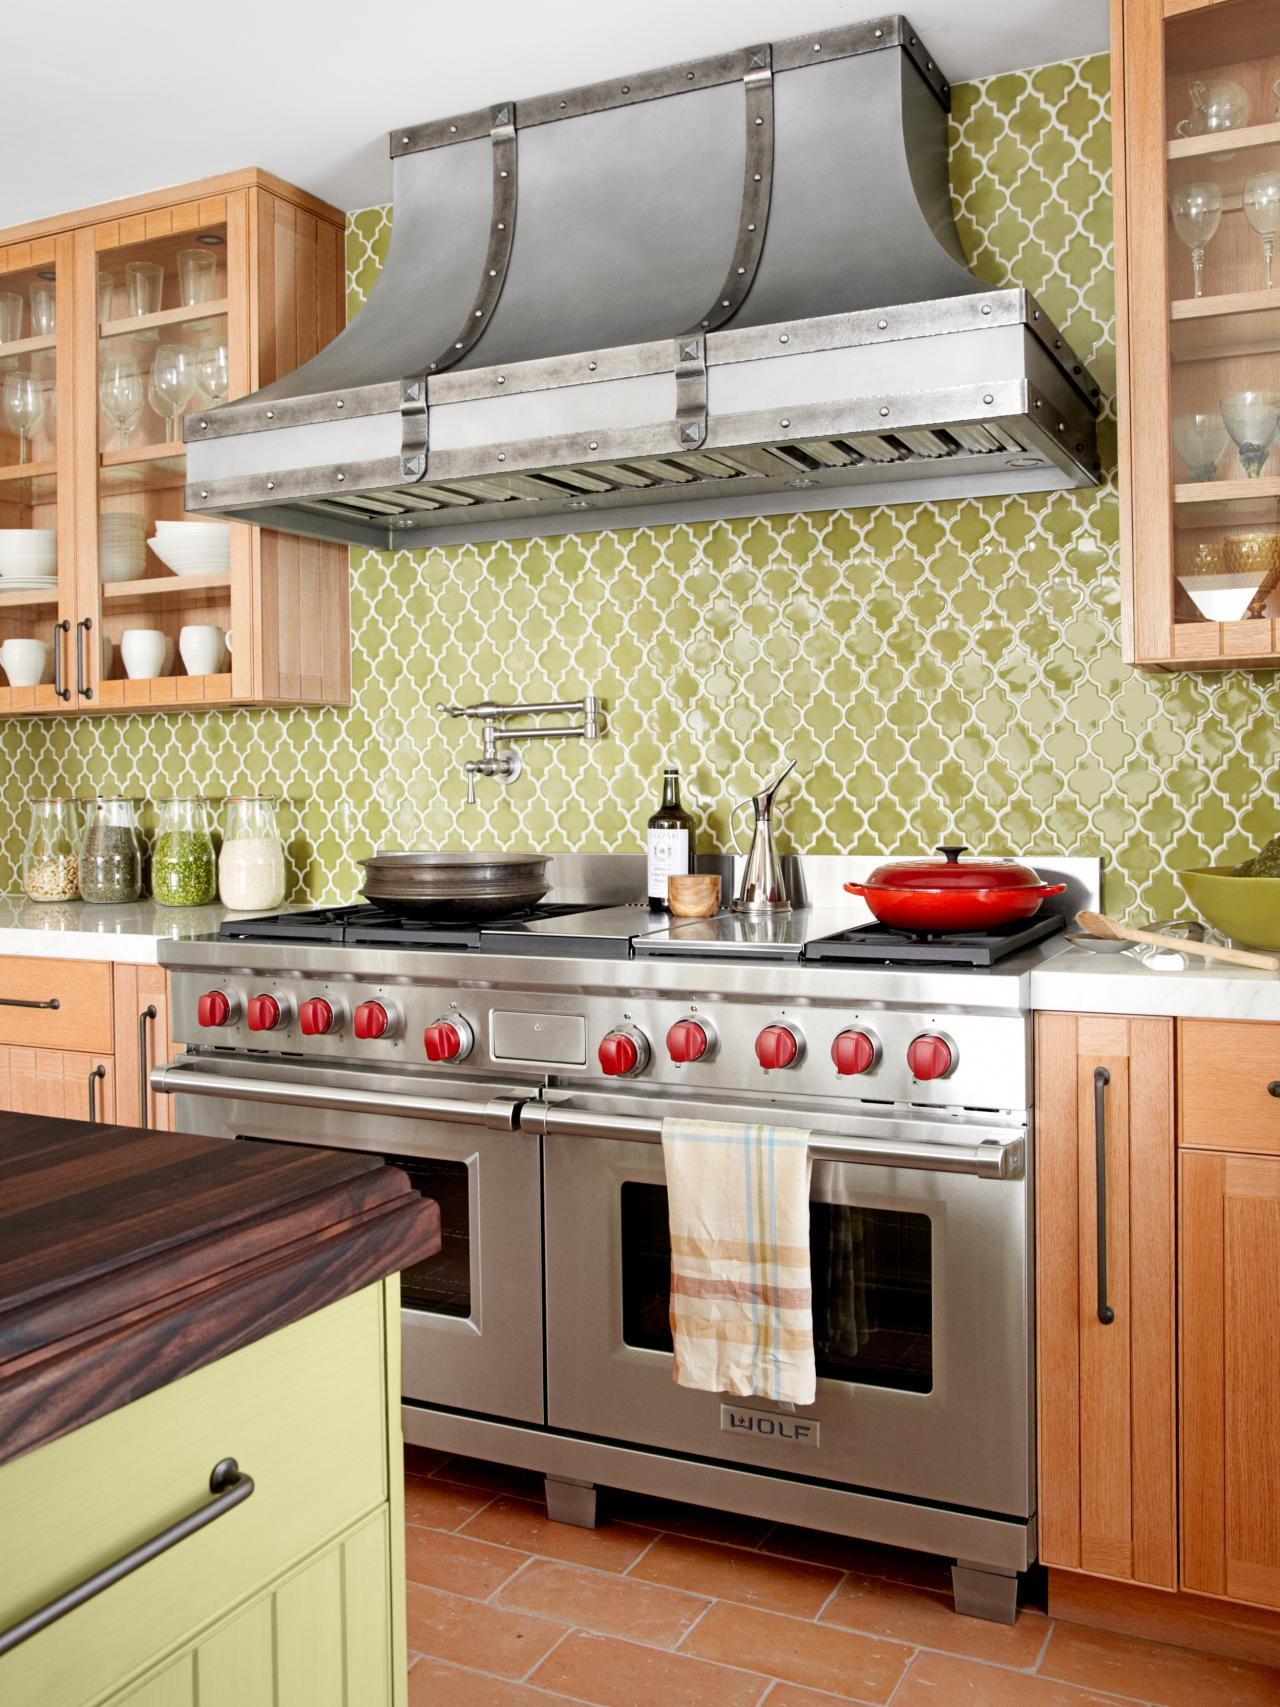 Trendy Paint Colors for Your Kitchen2